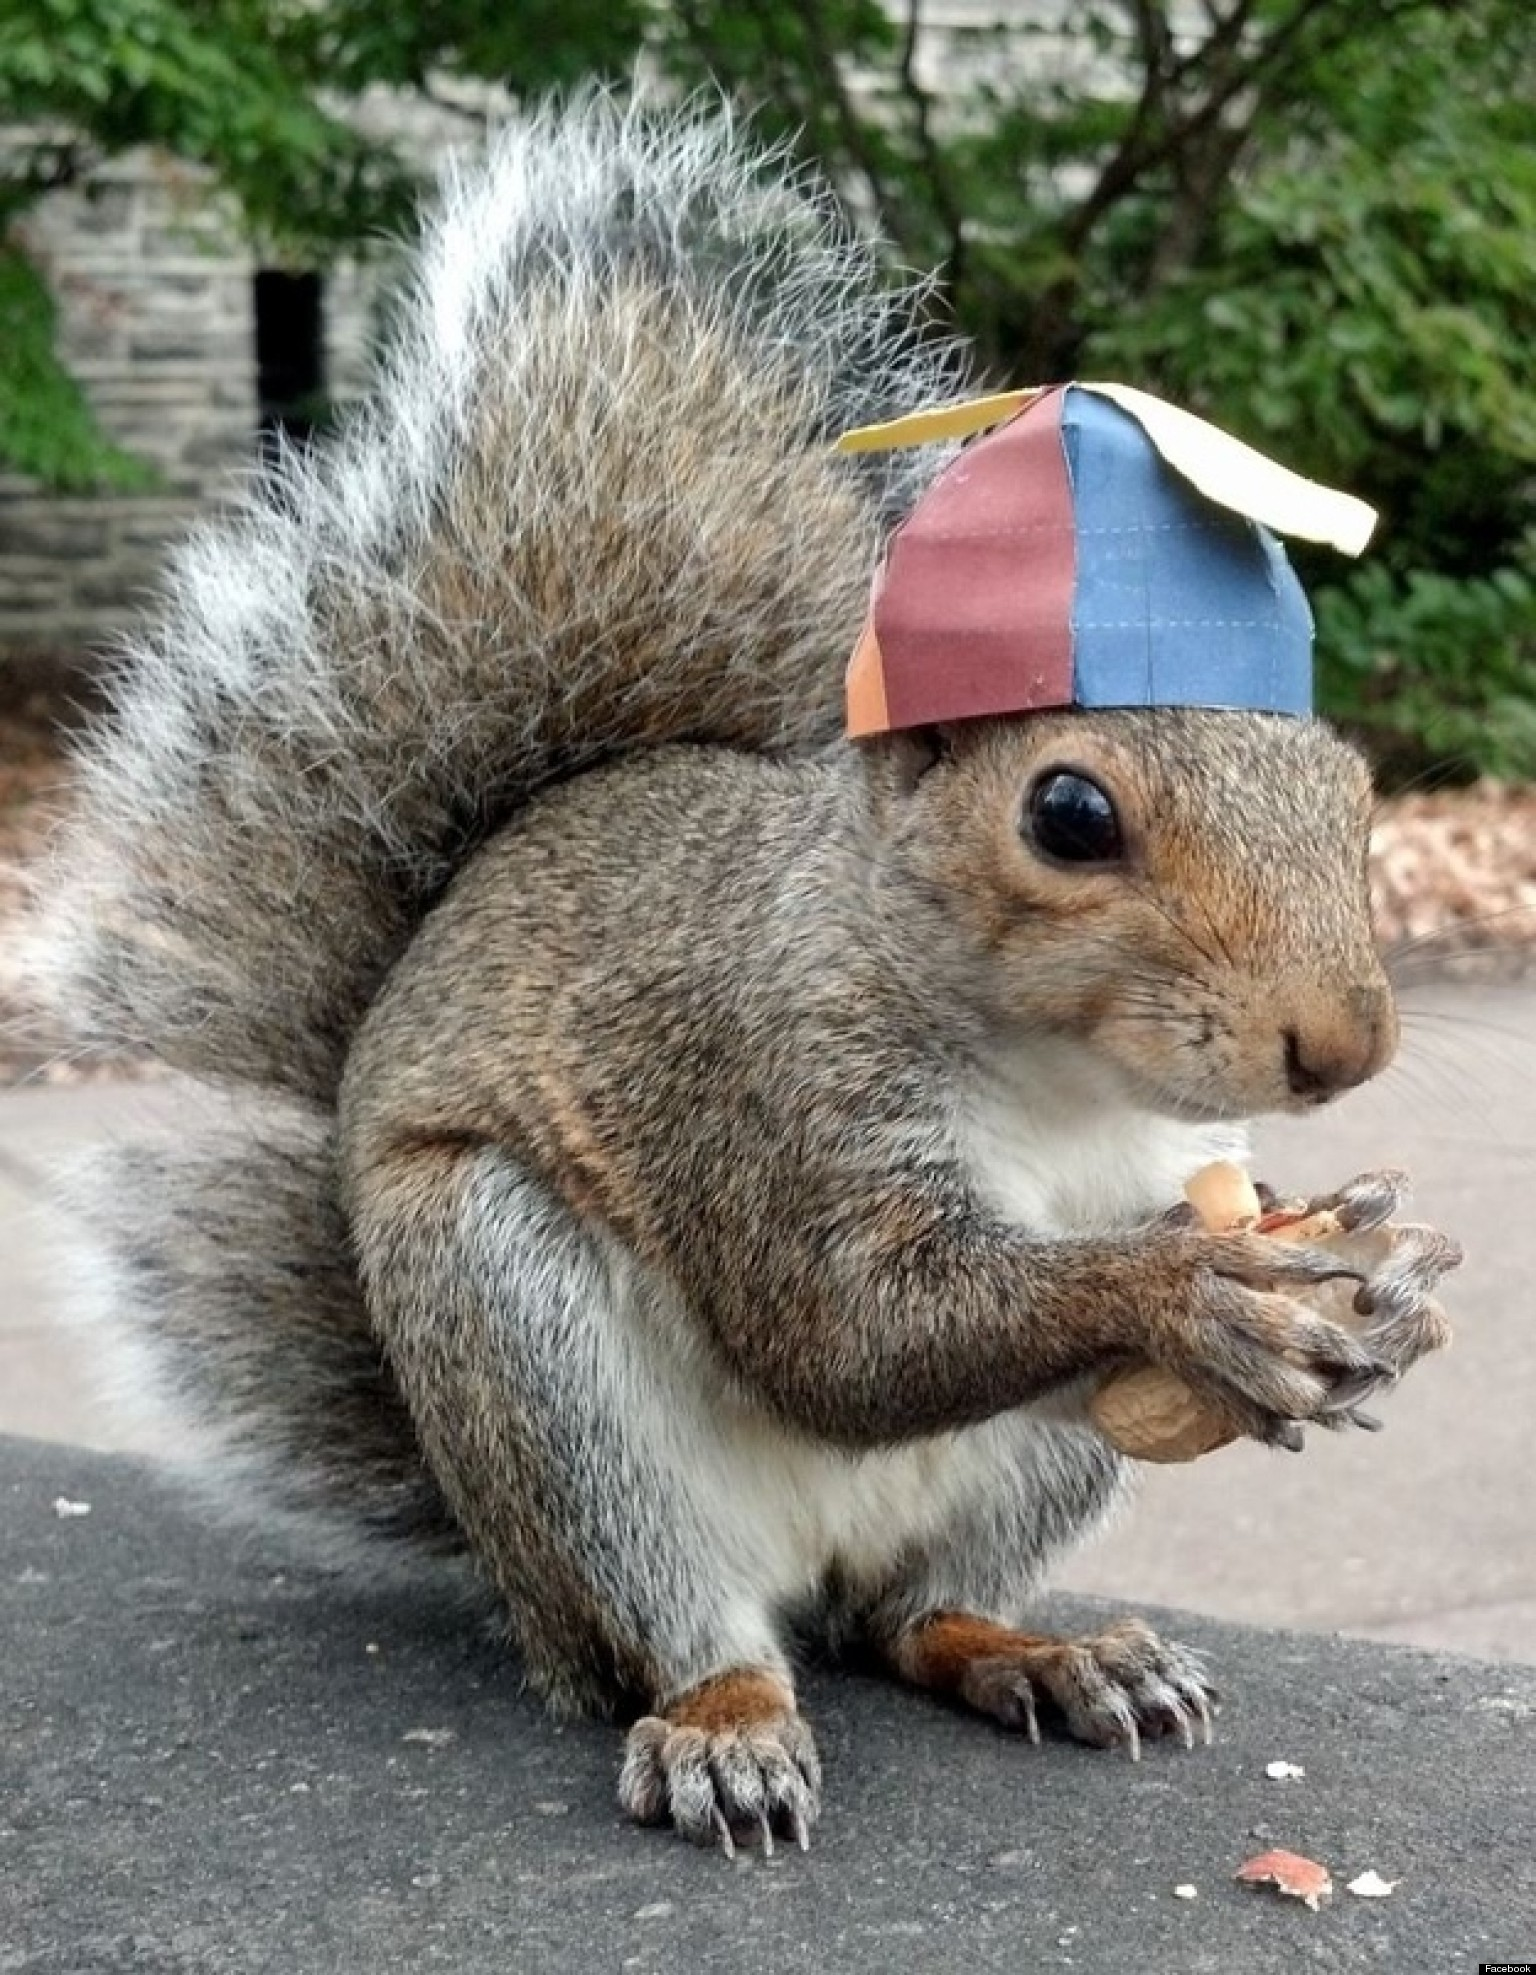 Sneezy The Squirrel Captures The Heart Of Penn State And